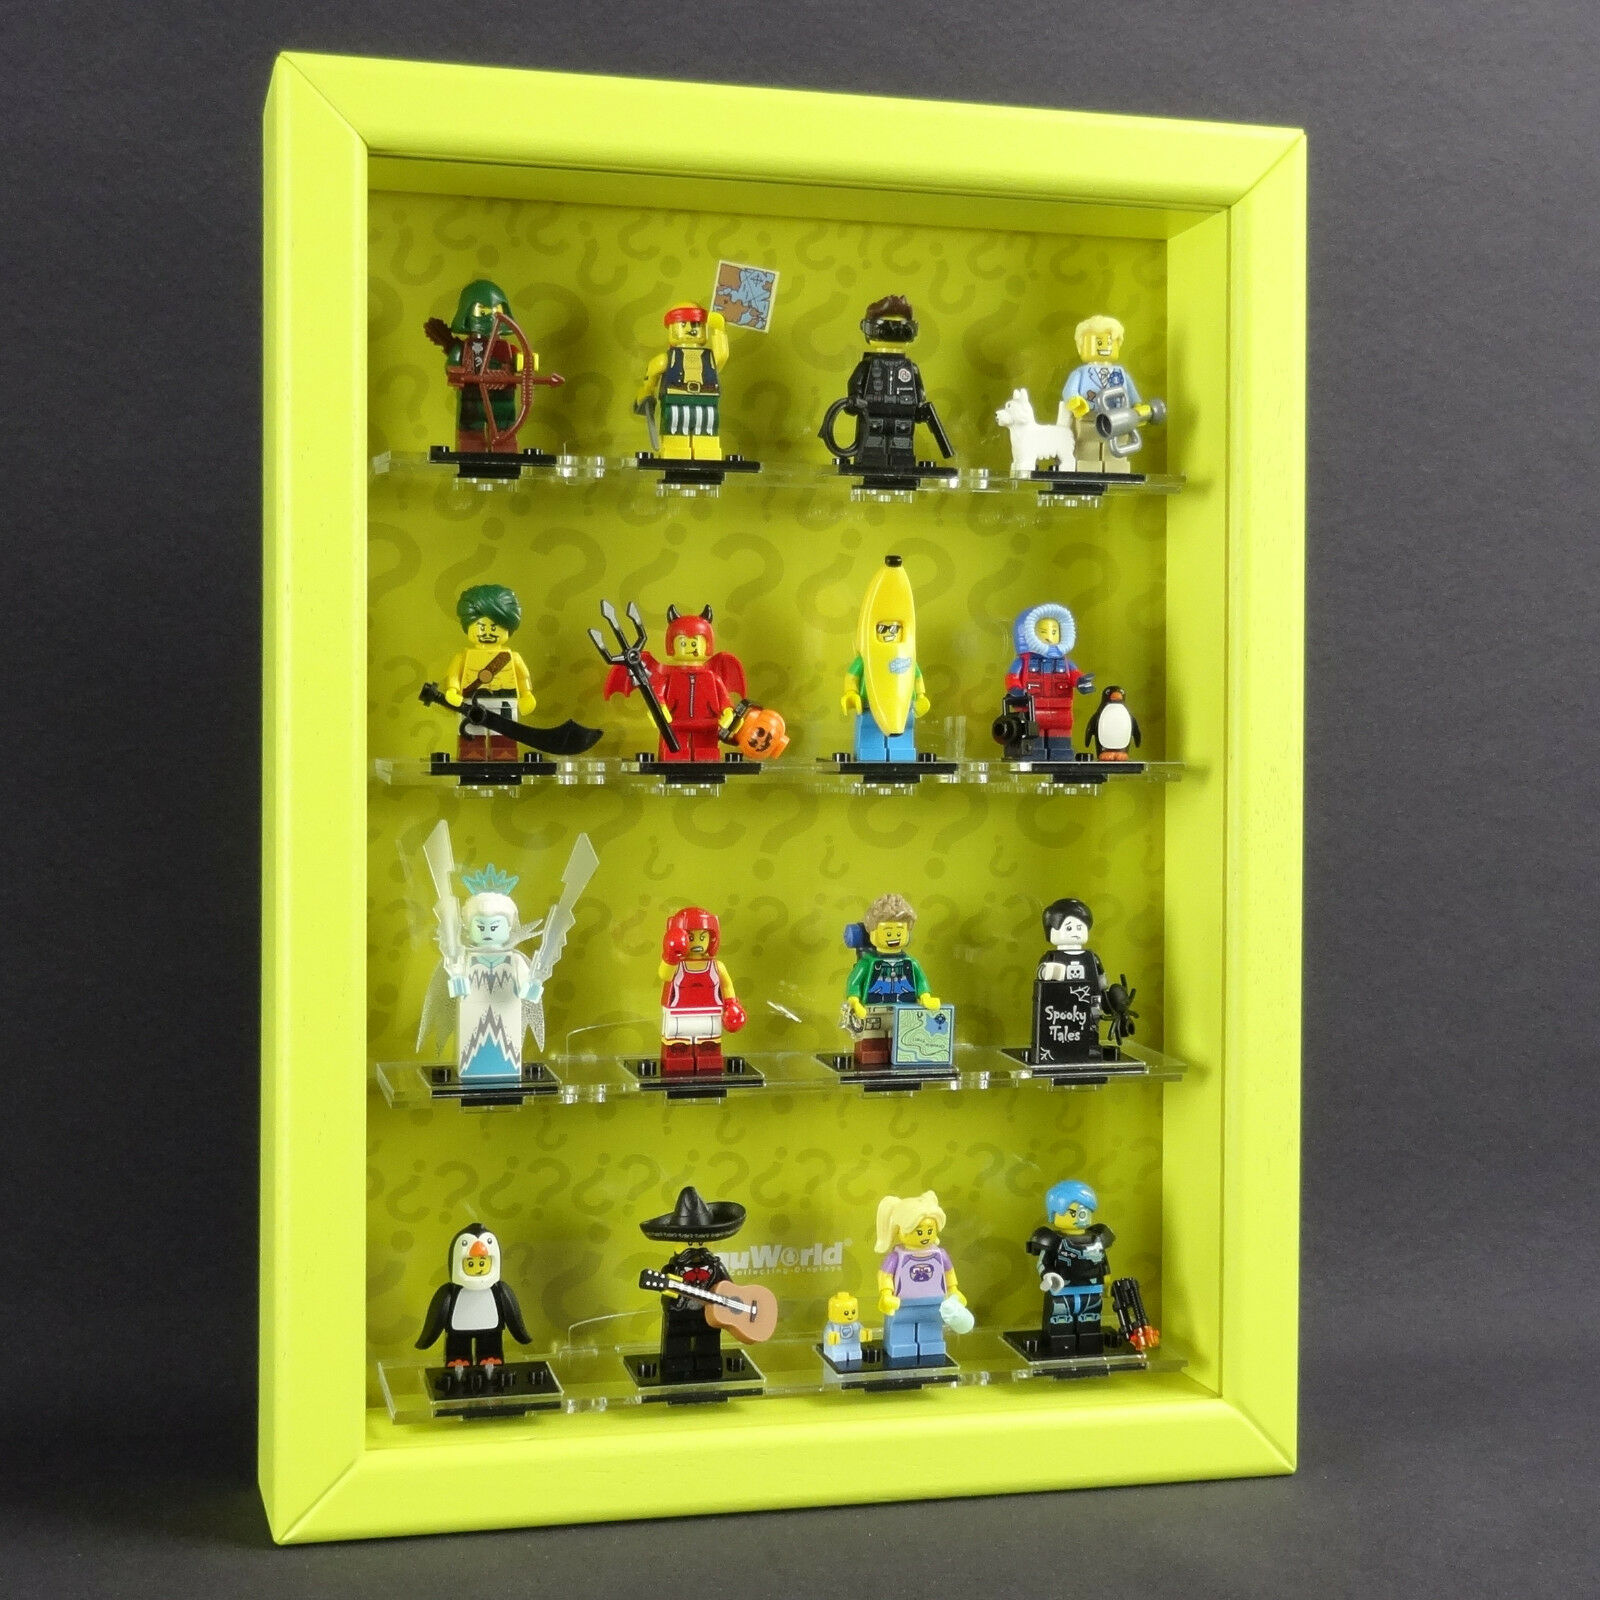 Figucase Collect Showcase for Lego Series 71013 Mini Figurines 16 Display Case